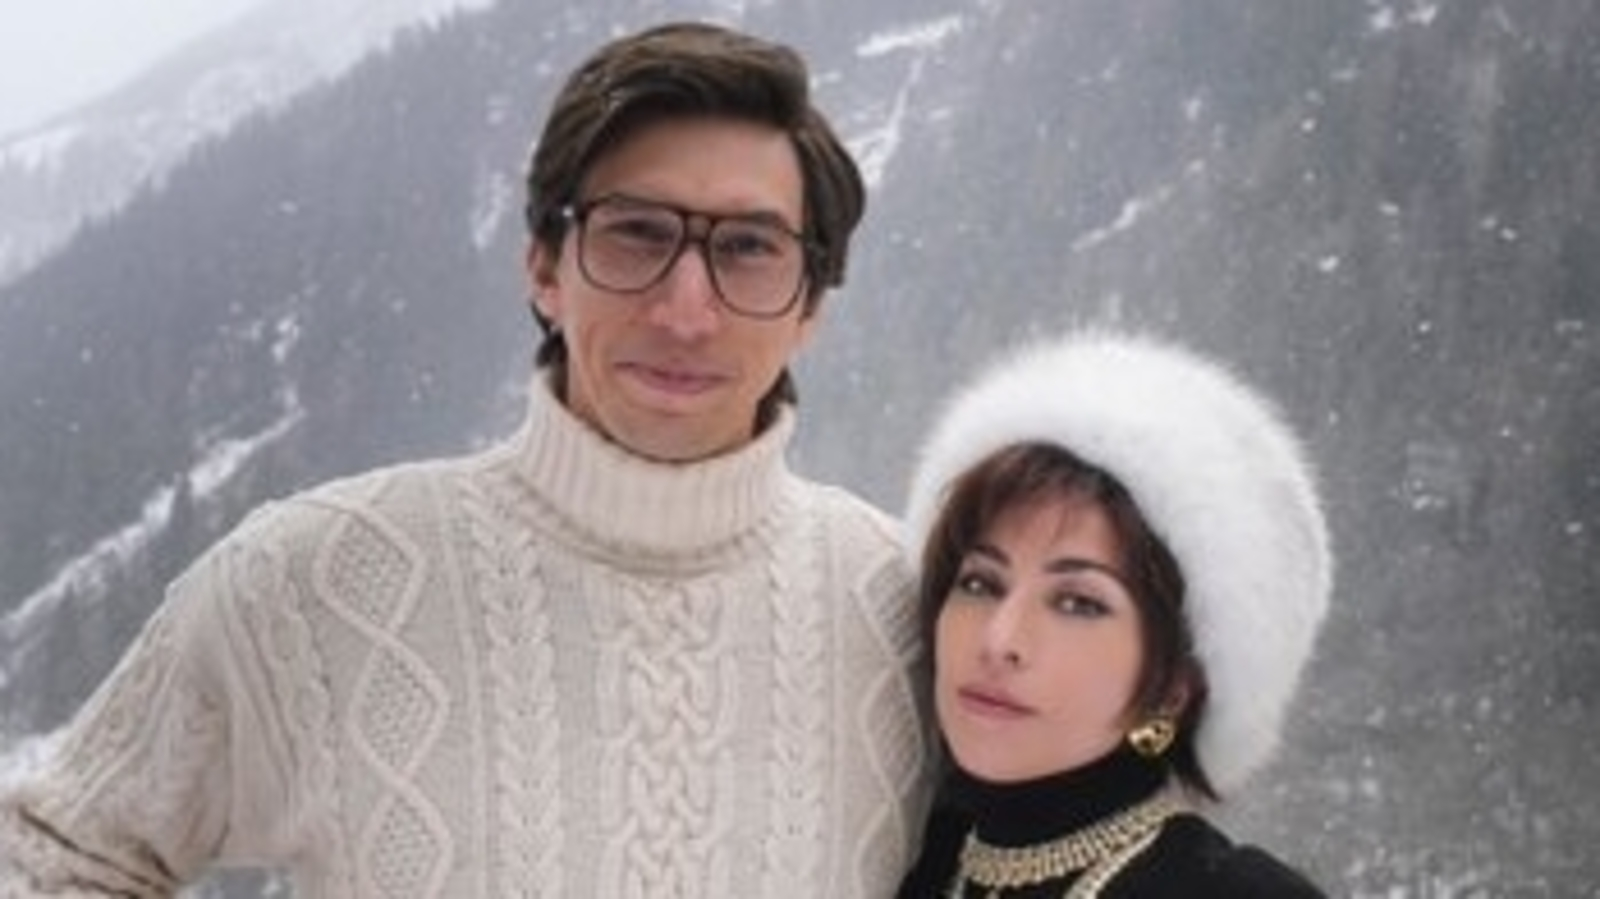 House of Gucci: First look of Lady Gaga, Adam Driver as Signor, Signora Gucci - Hindustan Times